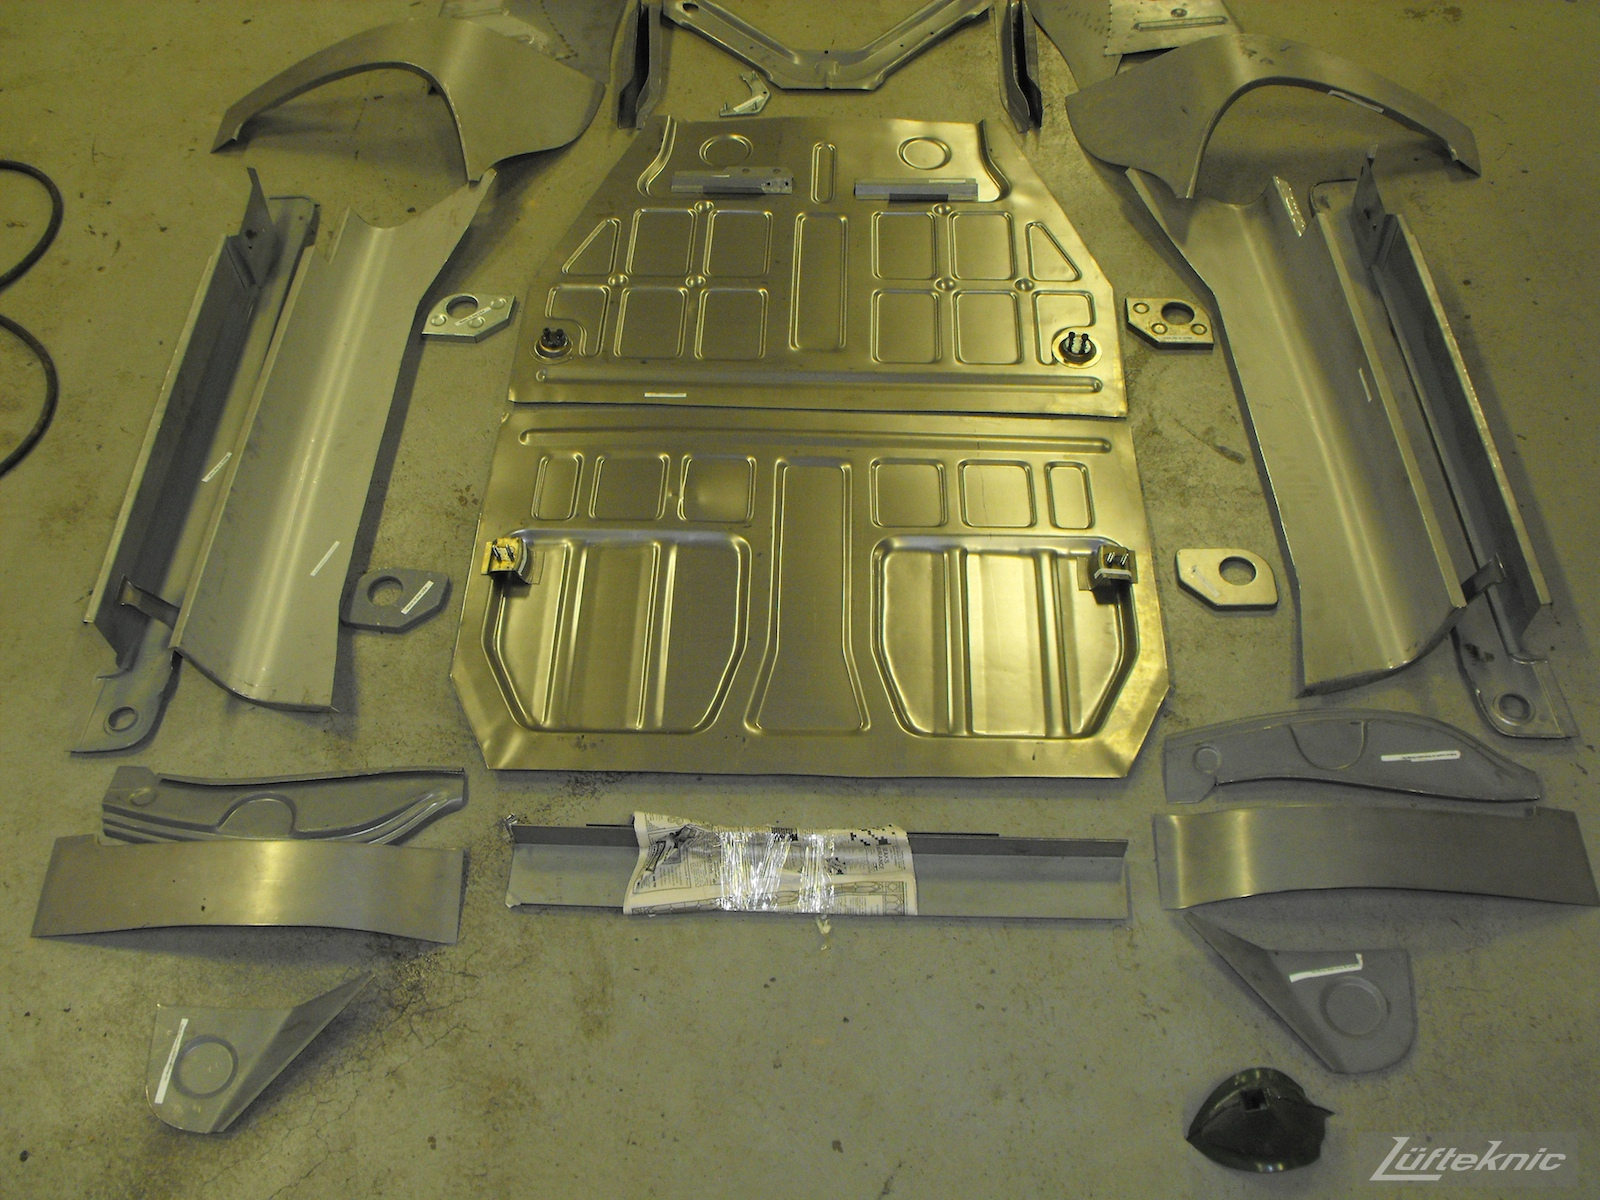 New floors and panels laid out on the ground for a 1961 Porsche 356B Roadster restoration.